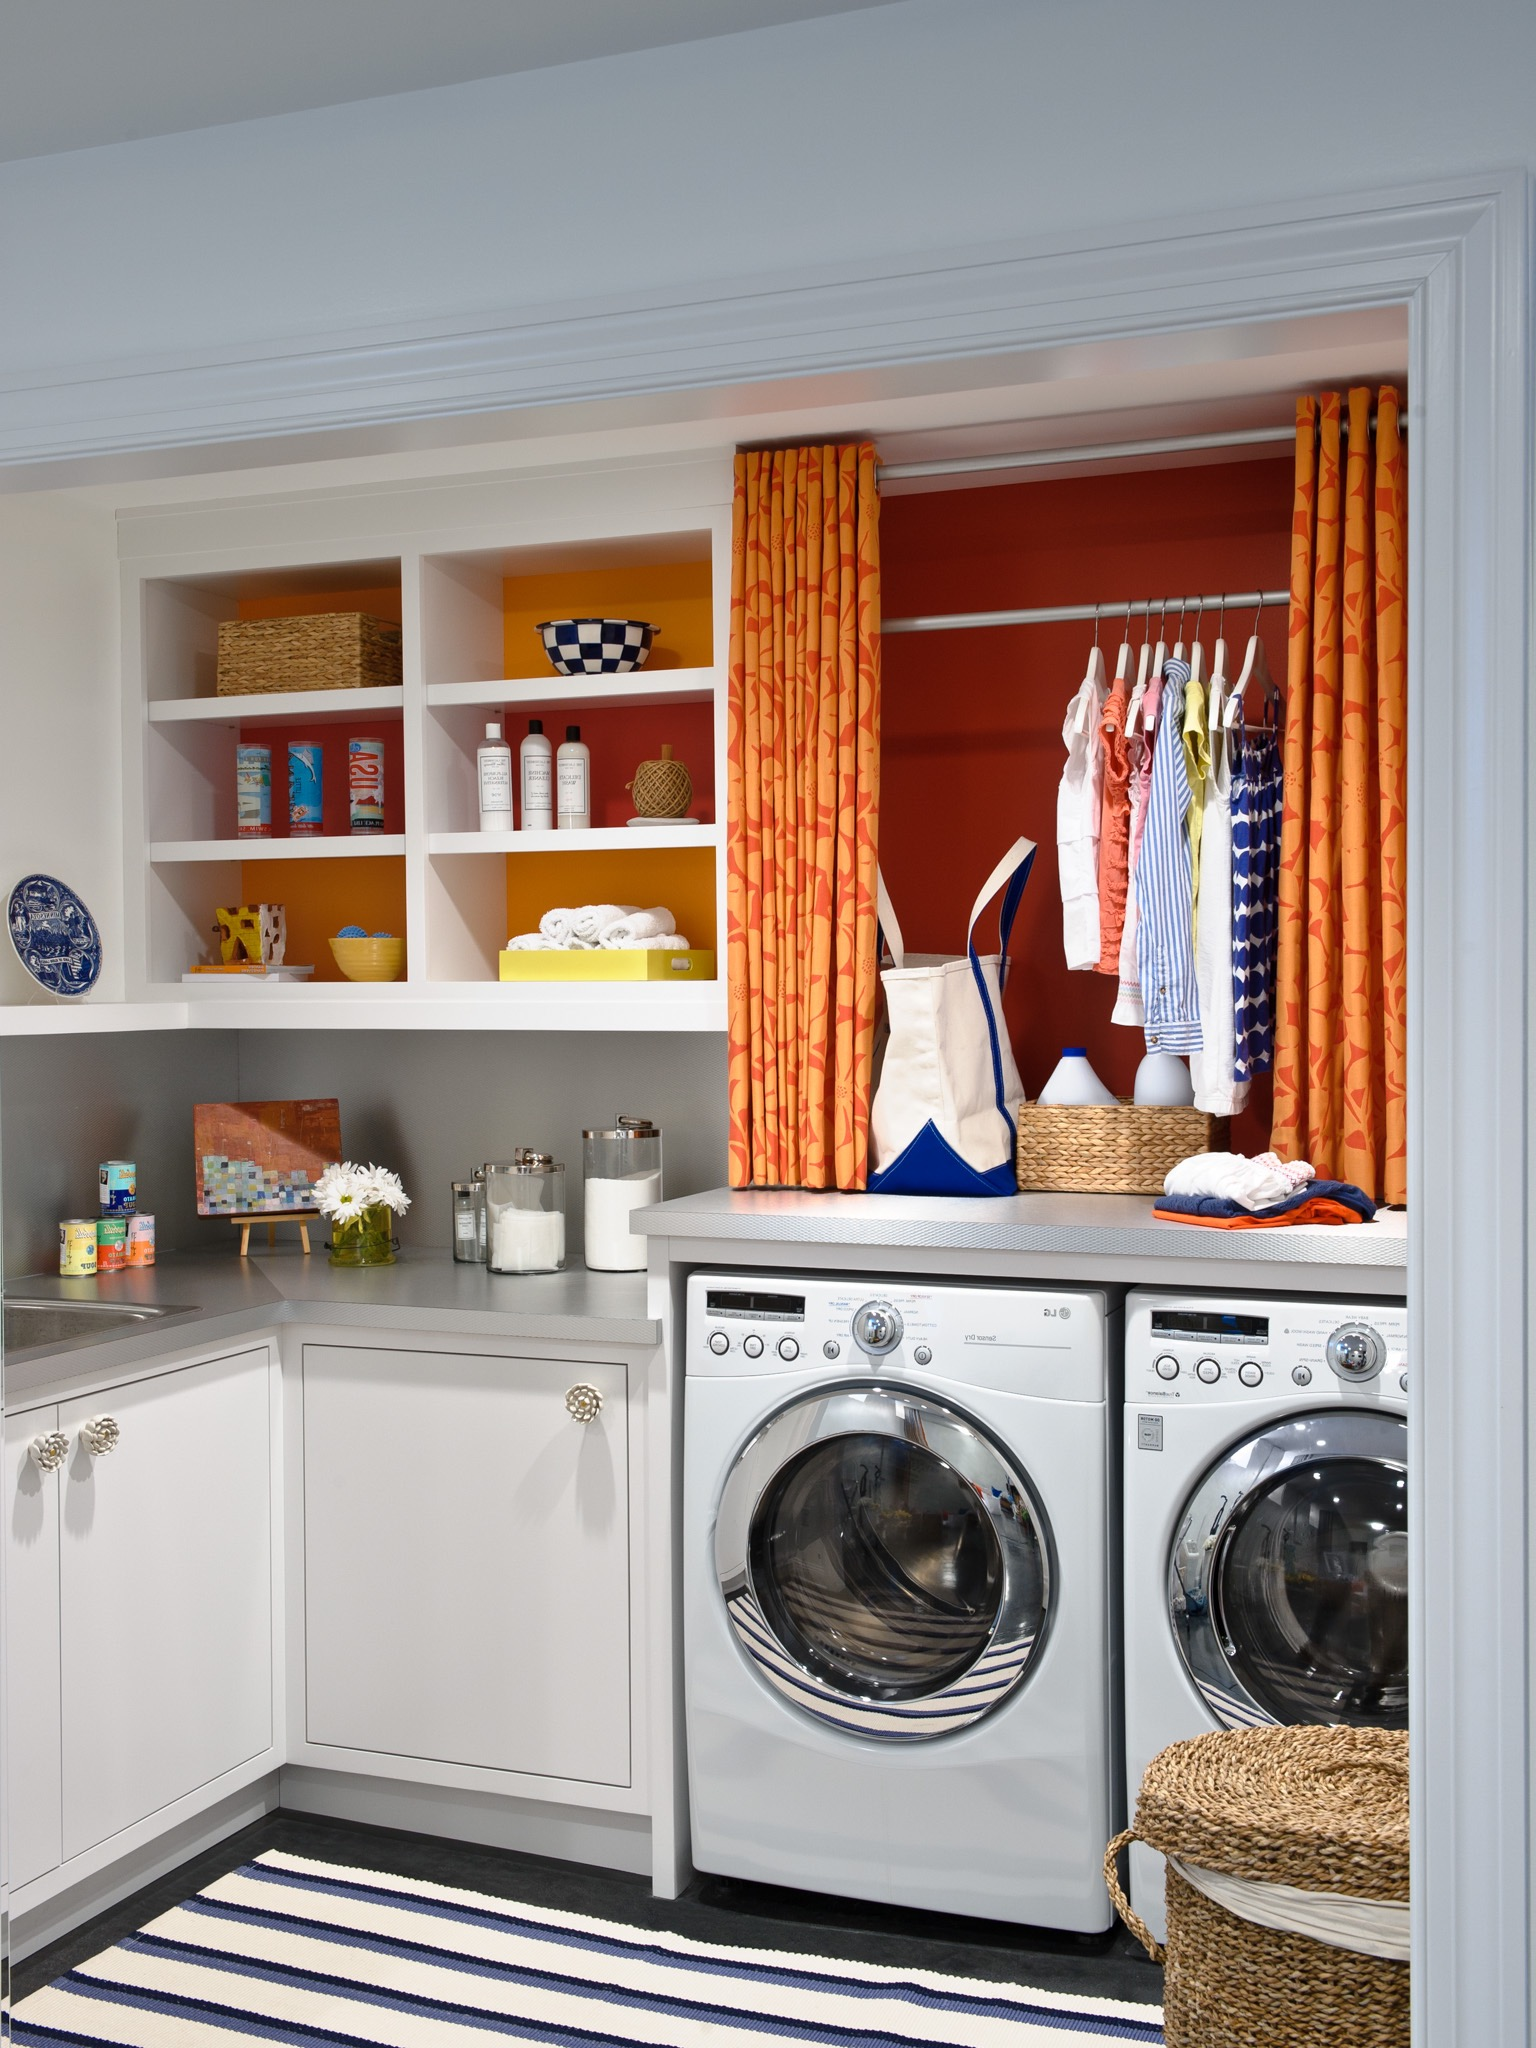 Basement Remodel To Cozy Modern Laundry Room (Image 3 of 26)